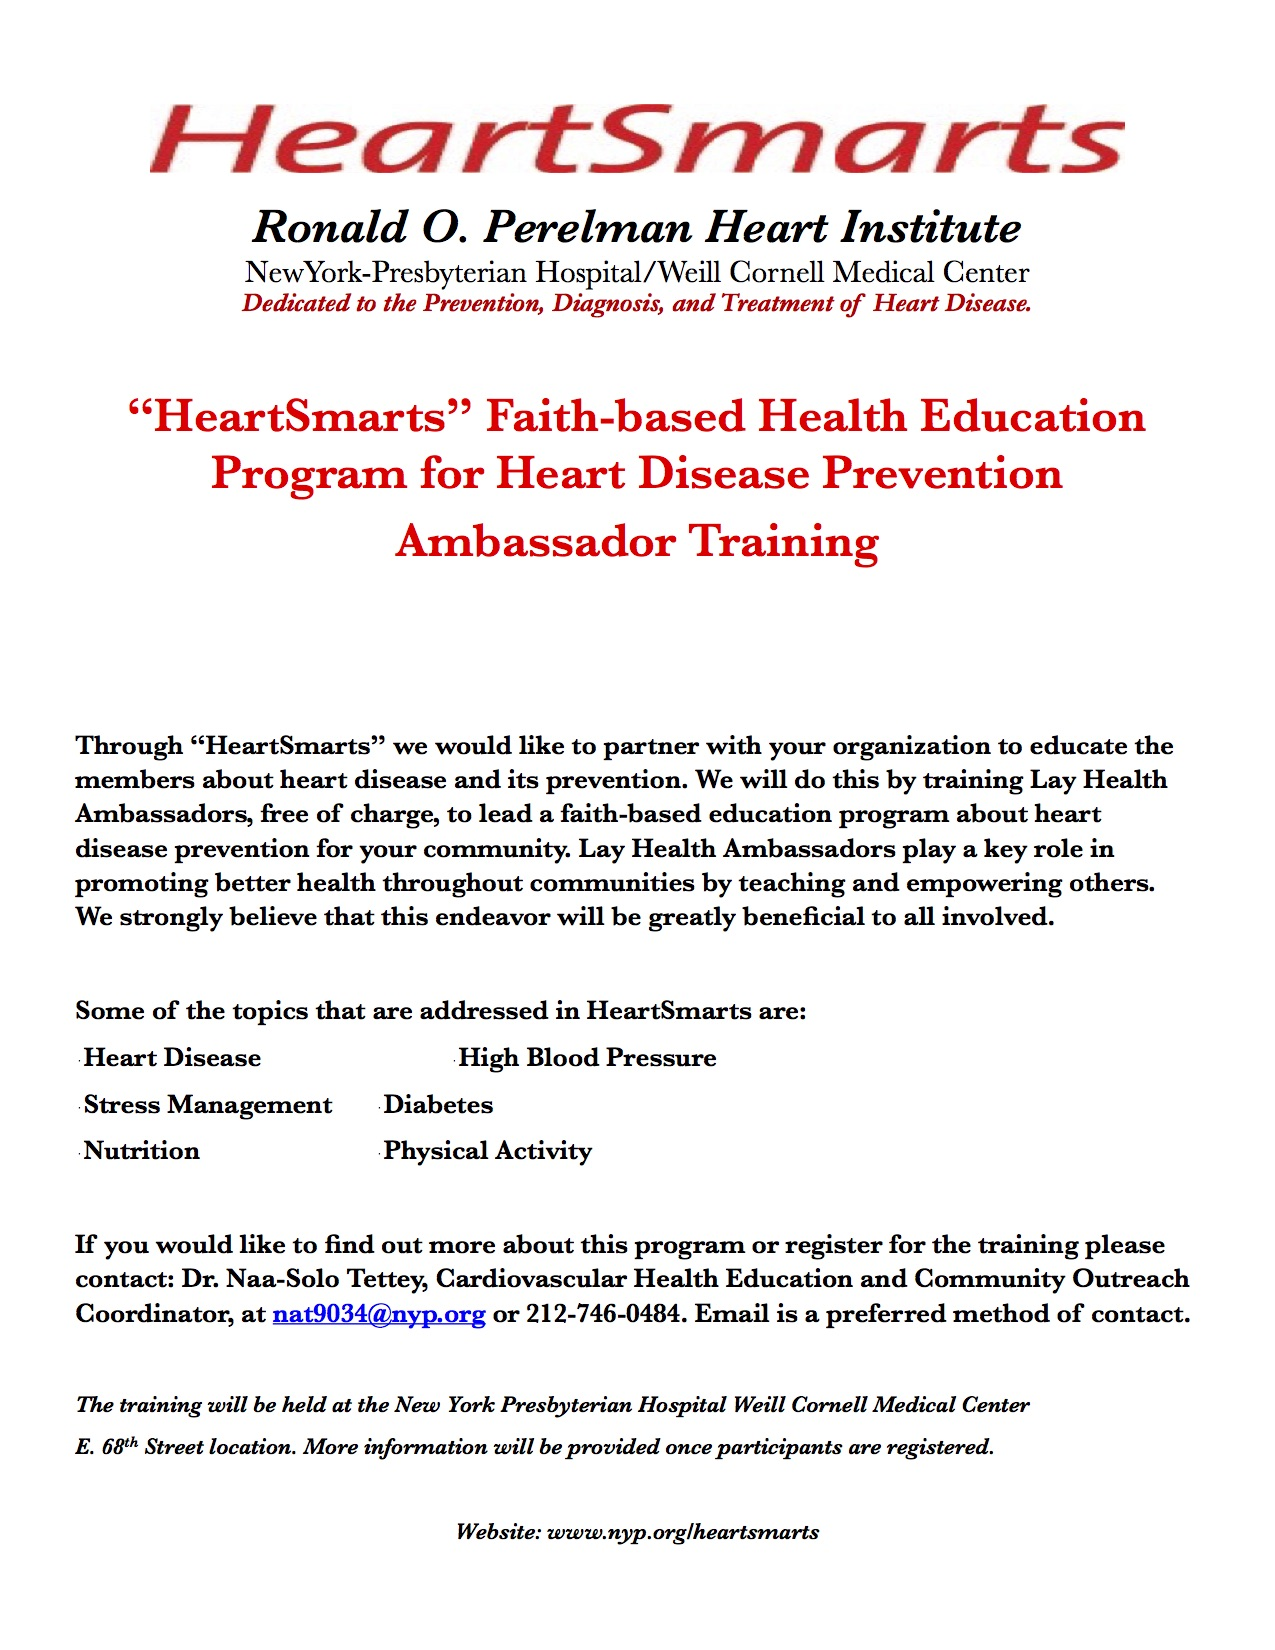 Heart Smarts Ambassador Training Main Flier 3-15